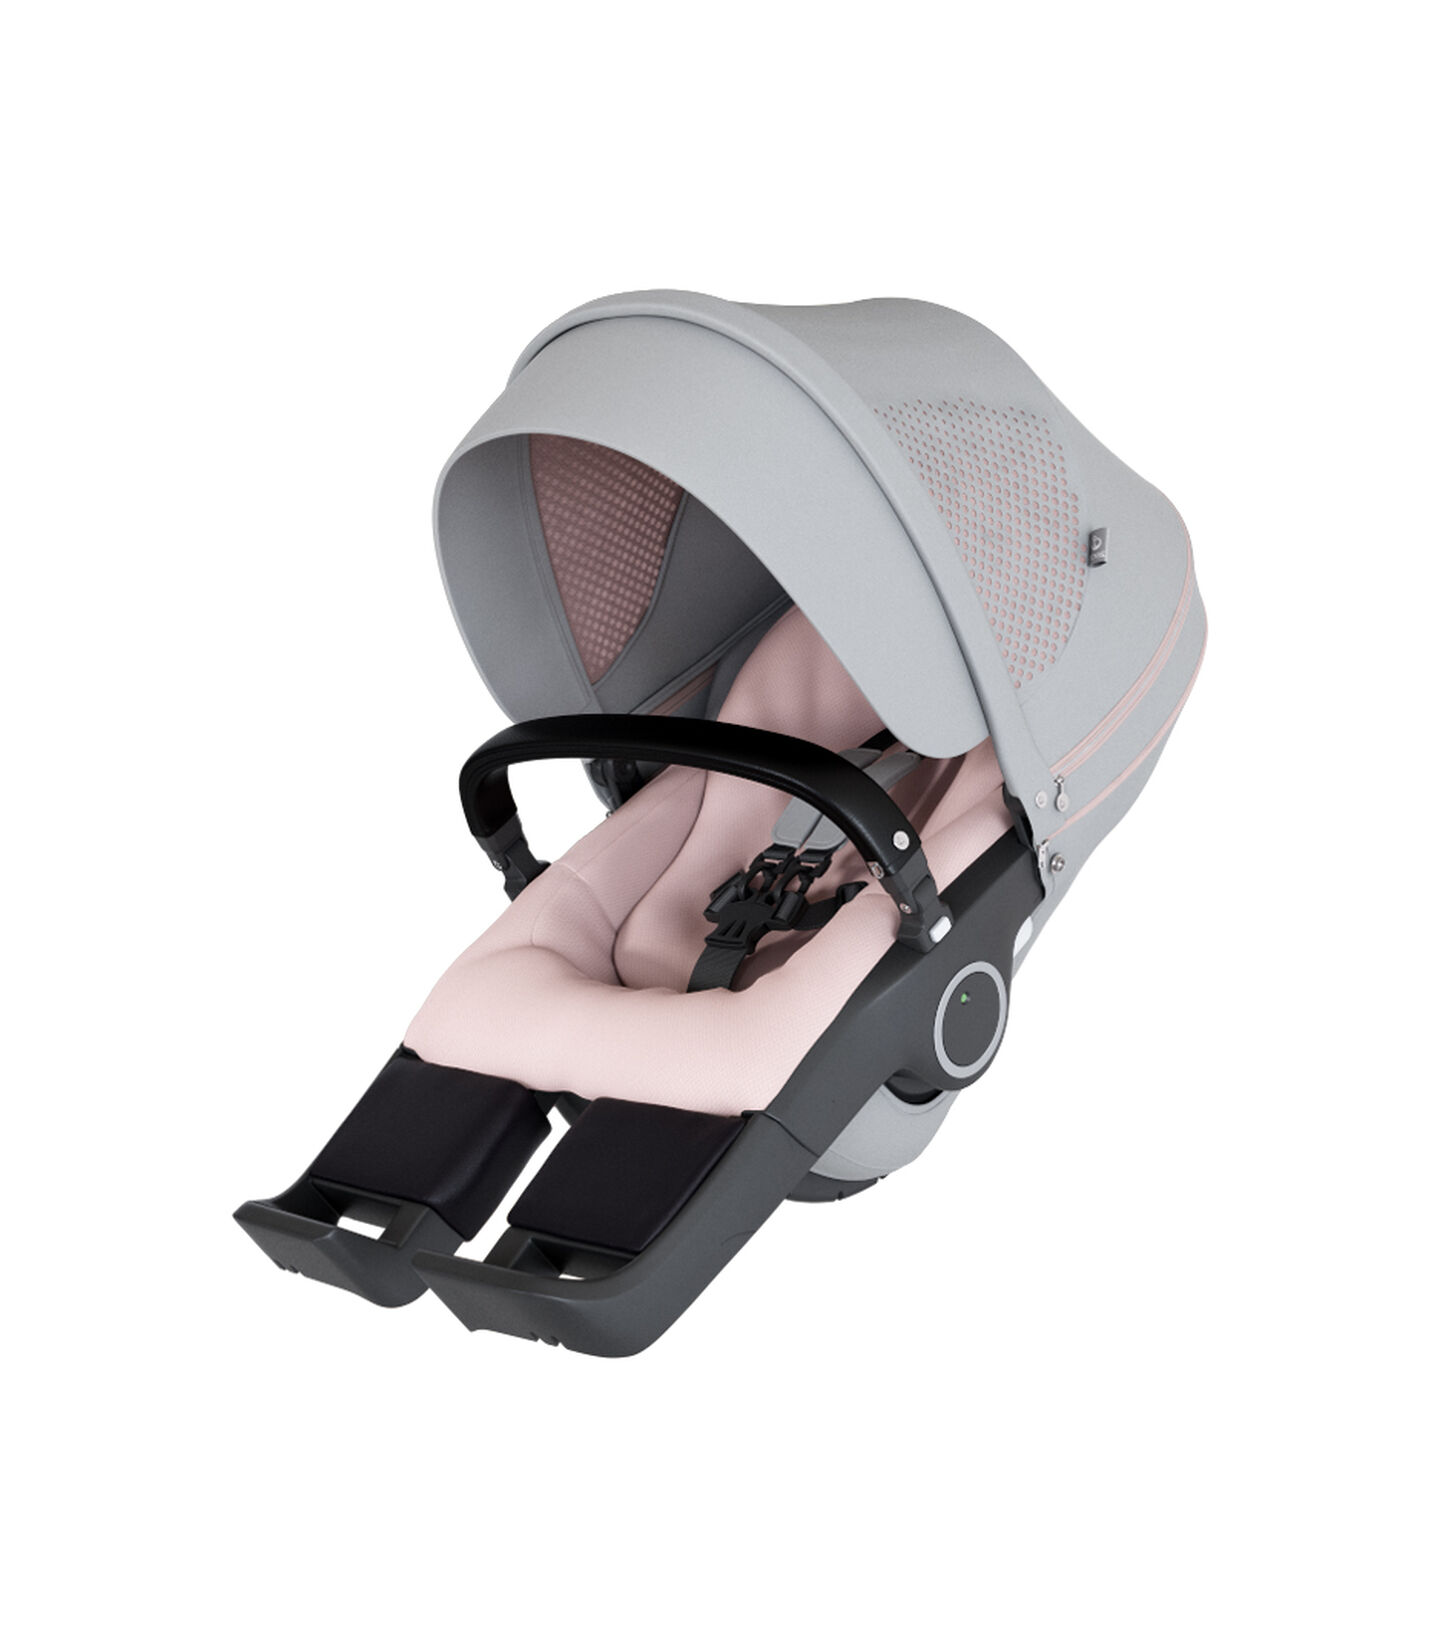 Stokke® Stroller Seat Complete Athleisure Pink, Серо-розовый, mainview view 2